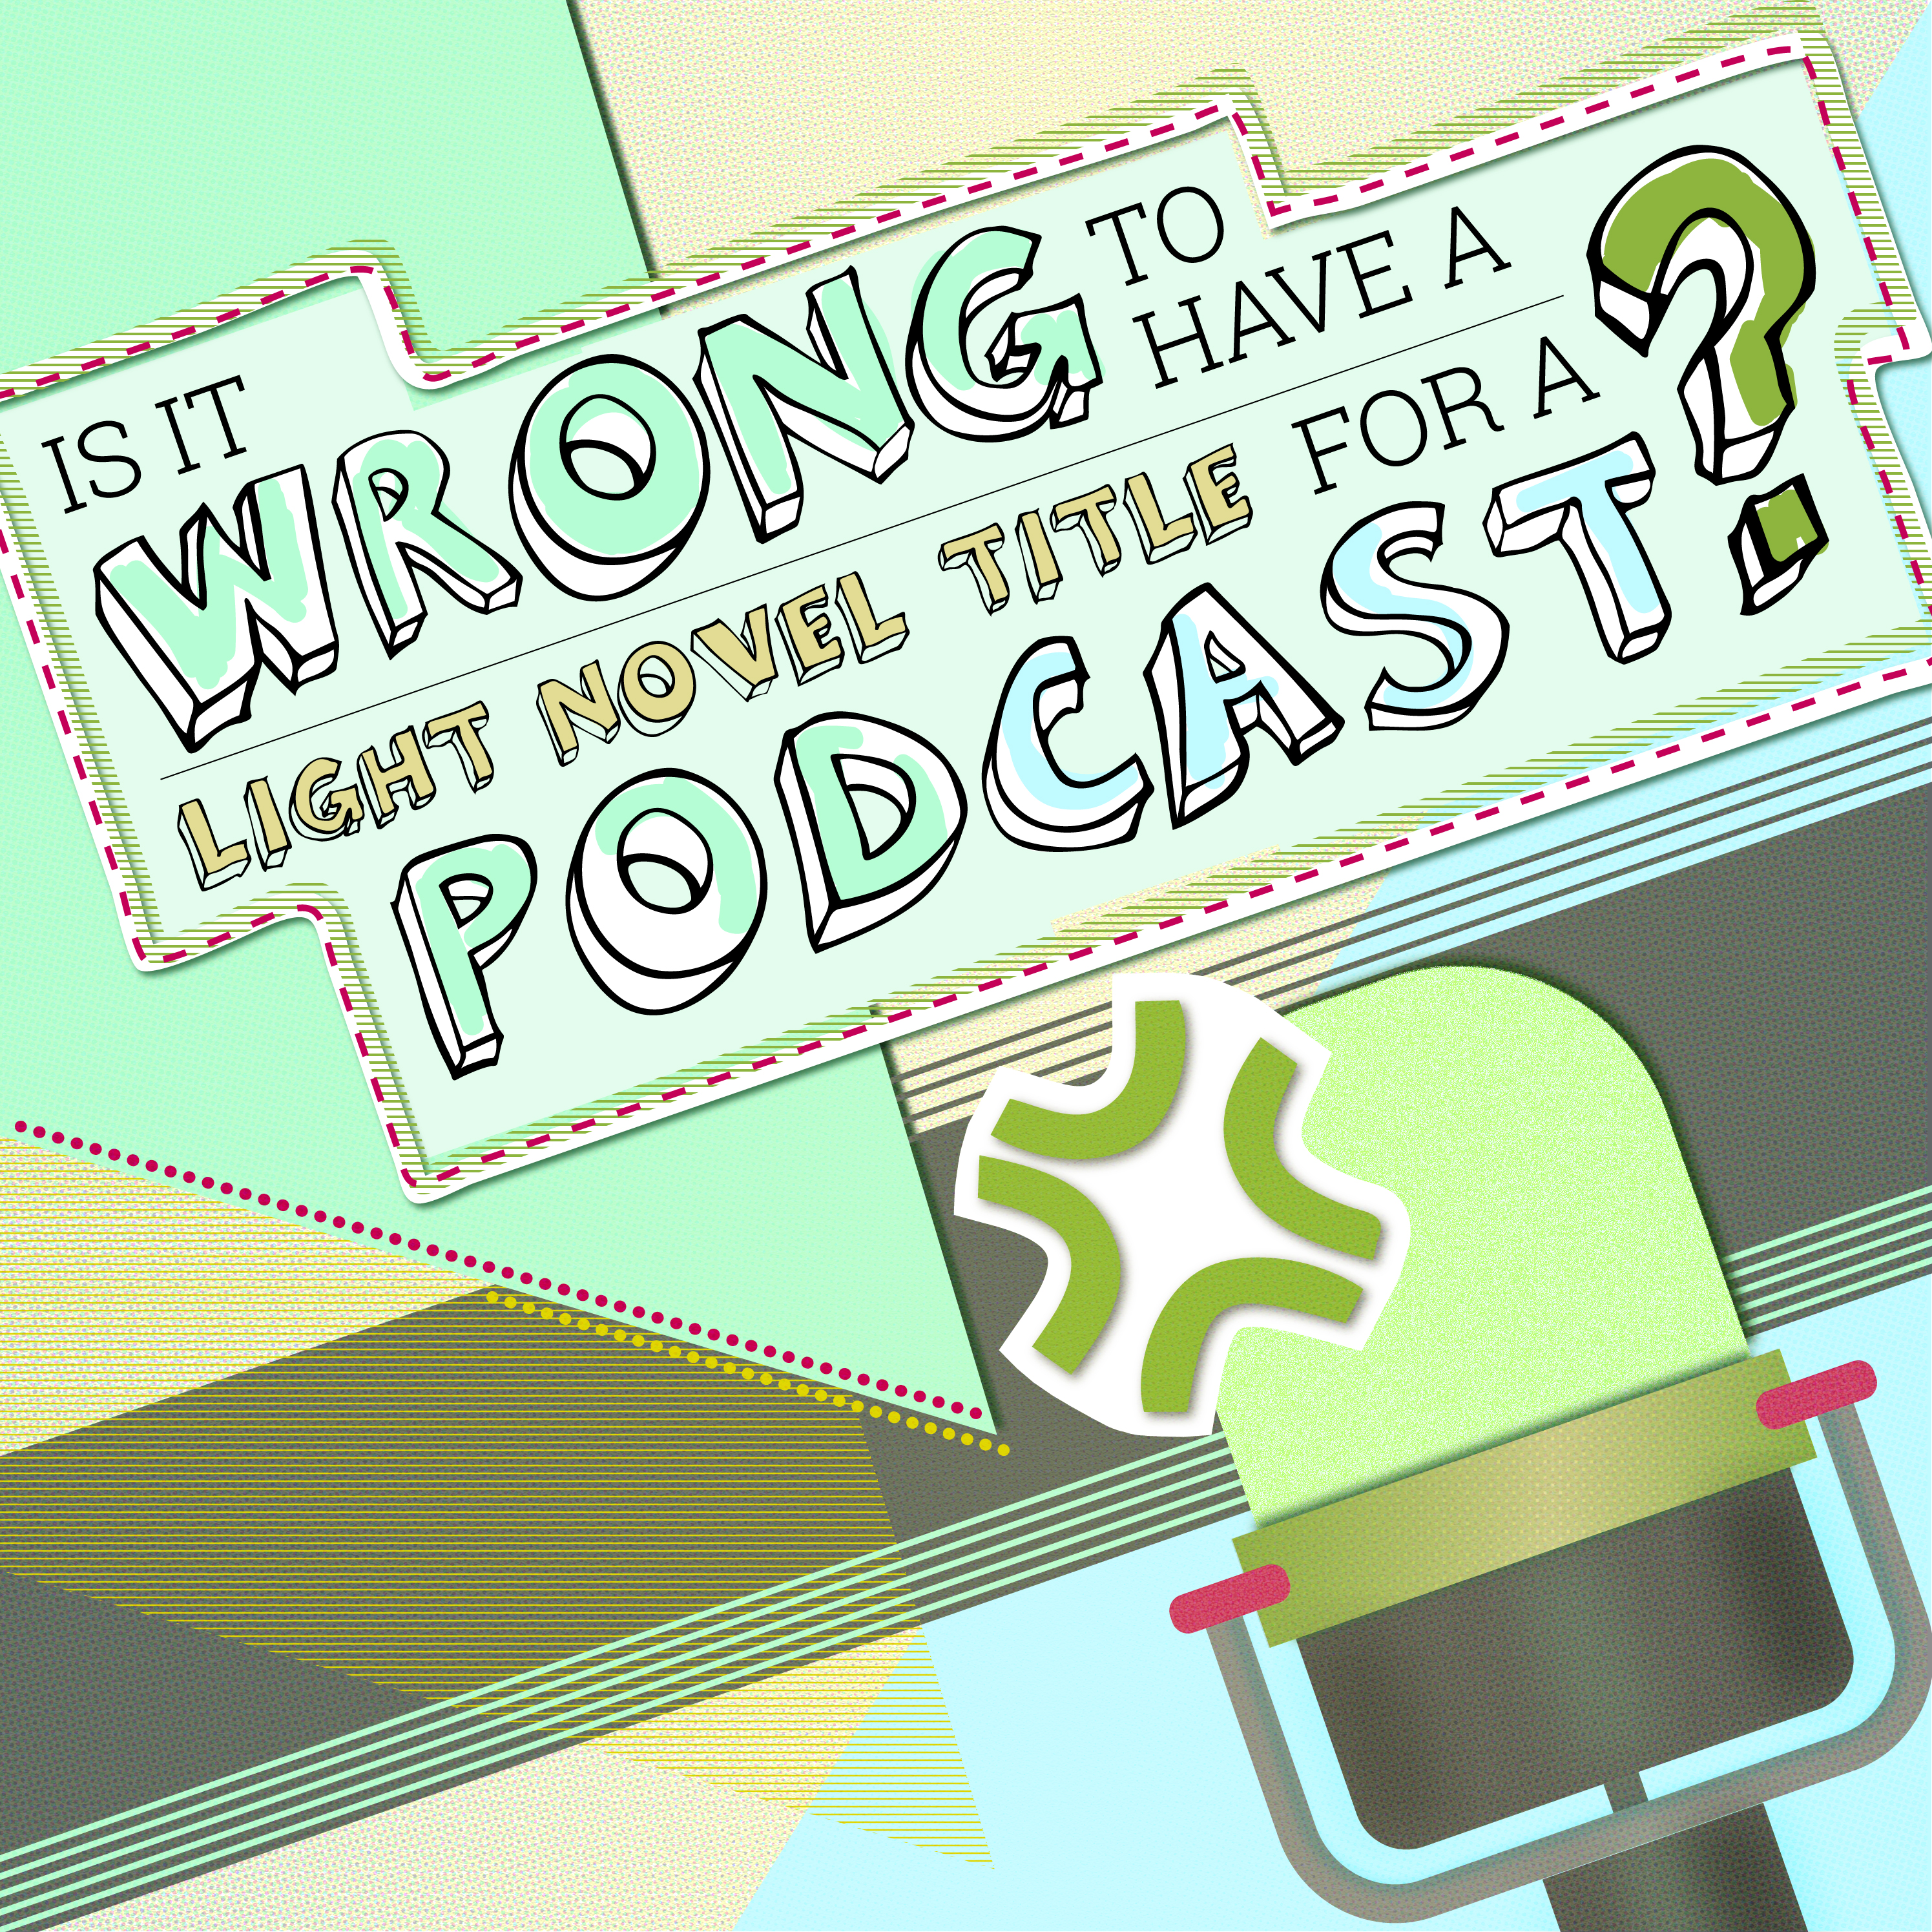 Is It Wrong to Have a Light Novel Title for a Podcast? show art